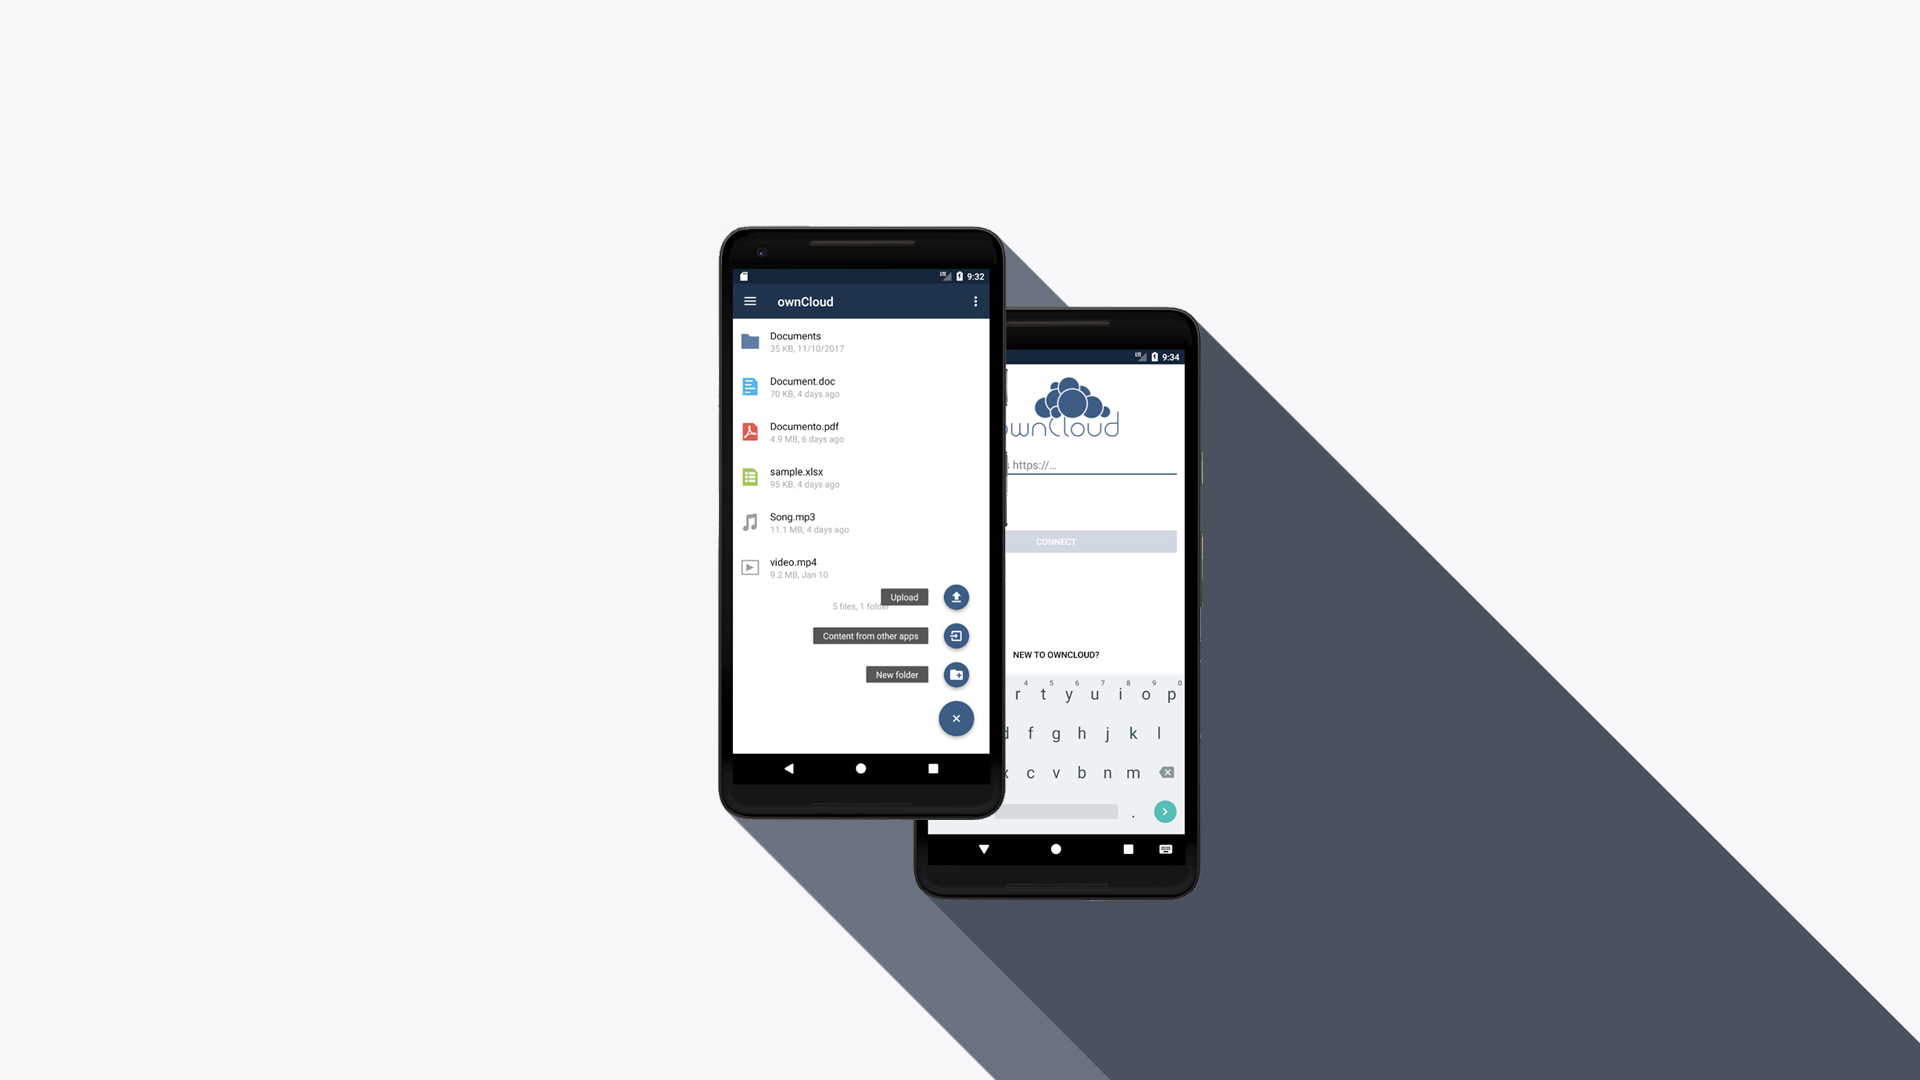 ownCloud Android 2.11.0 Release – Access Your Files from Any Android App